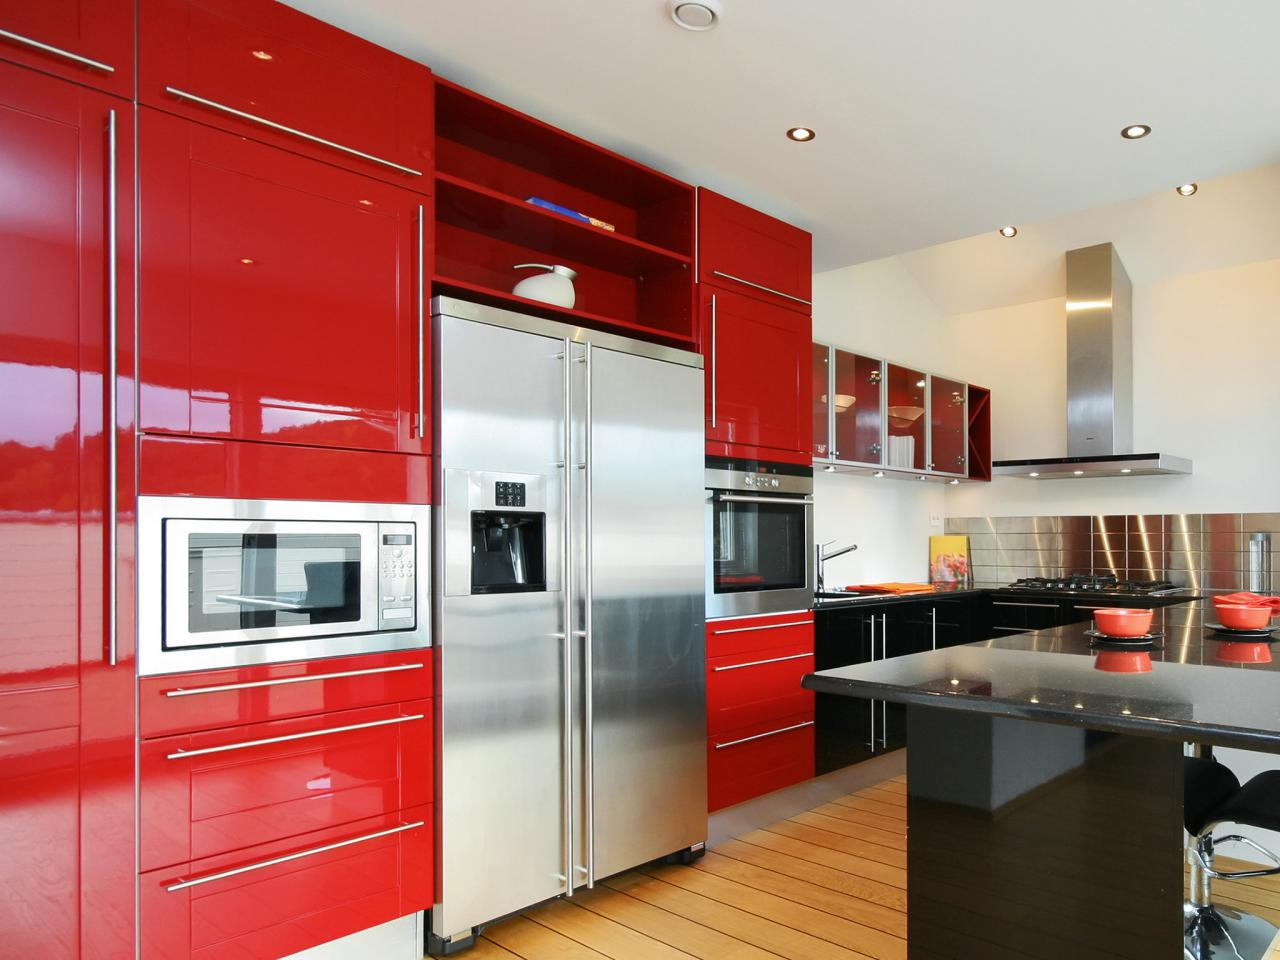 big-metal-refigerator-in-red-kitchen-cabinets-facing-black-countertop-on-wooden-floor